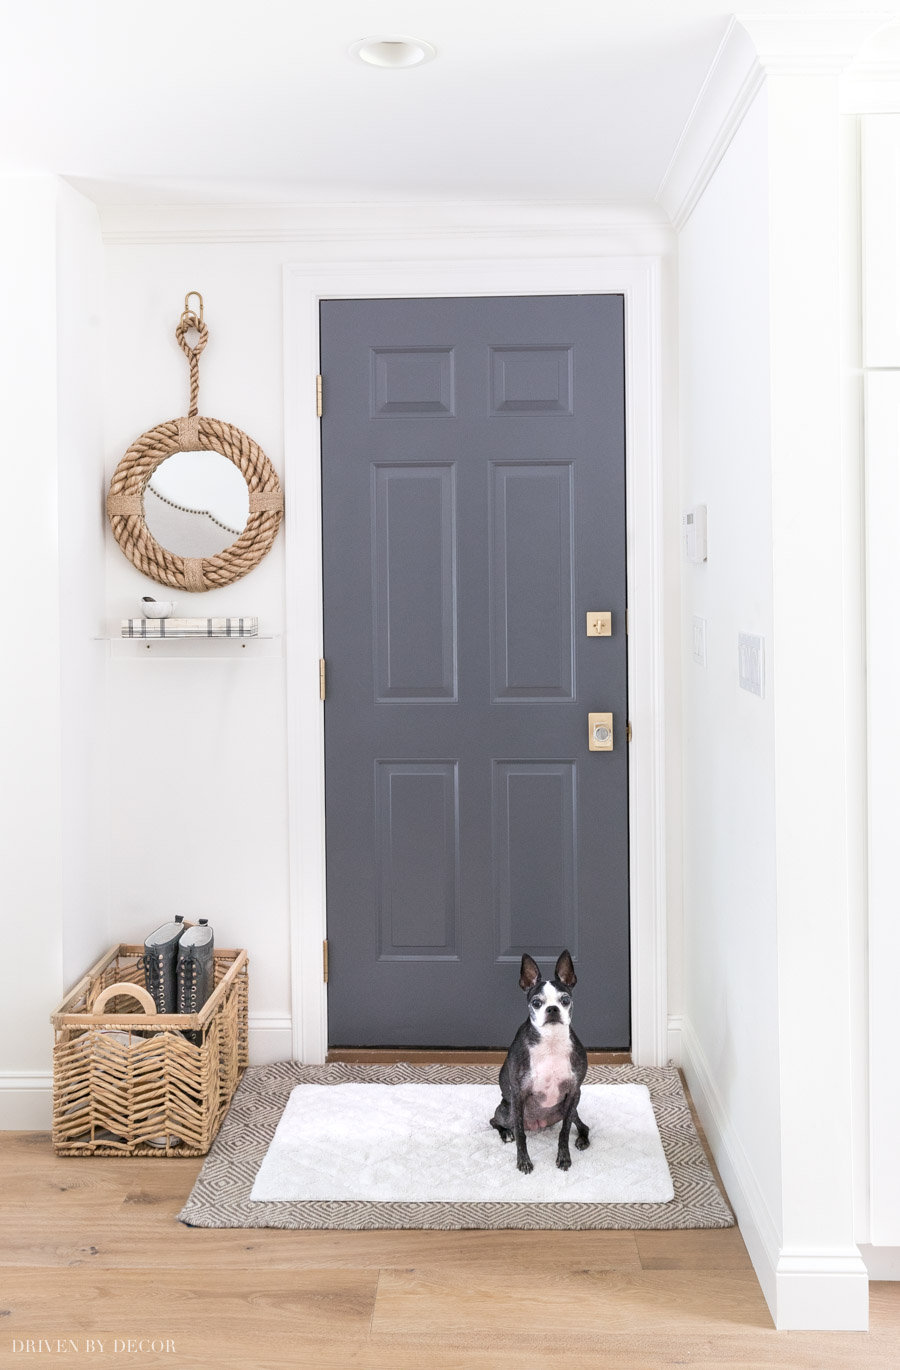 An easy to wash bathmat layered over a larger rug is a practical, stylish idea to keep dogs and kids from tracking dirt and mud into your home!